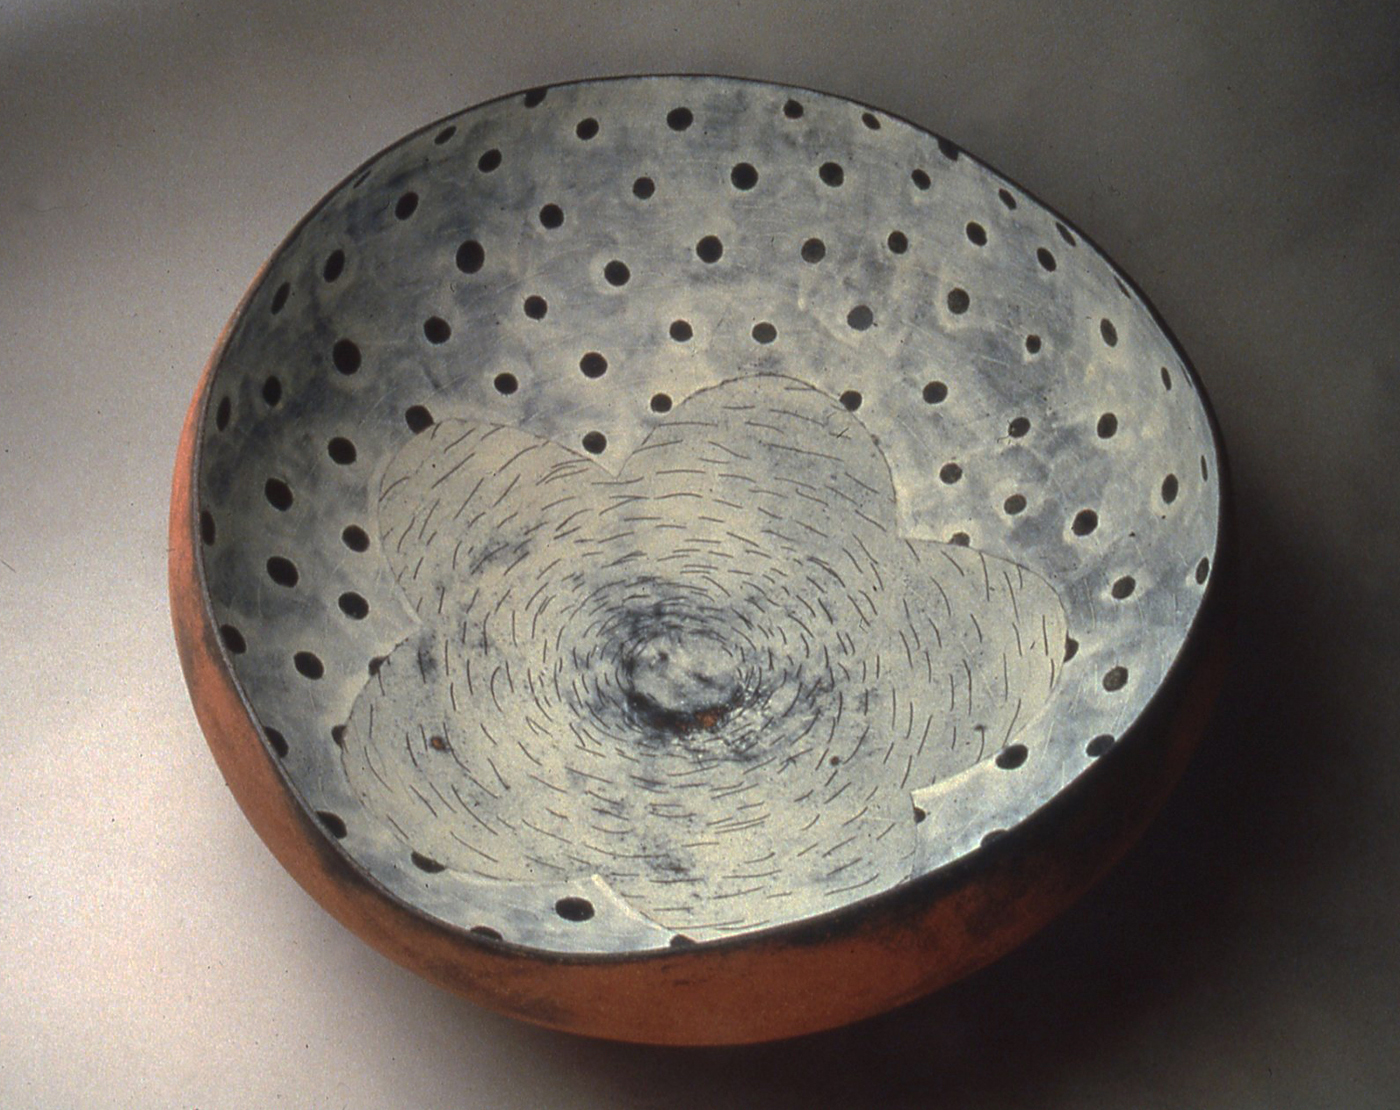 Untitled bowl, 1998